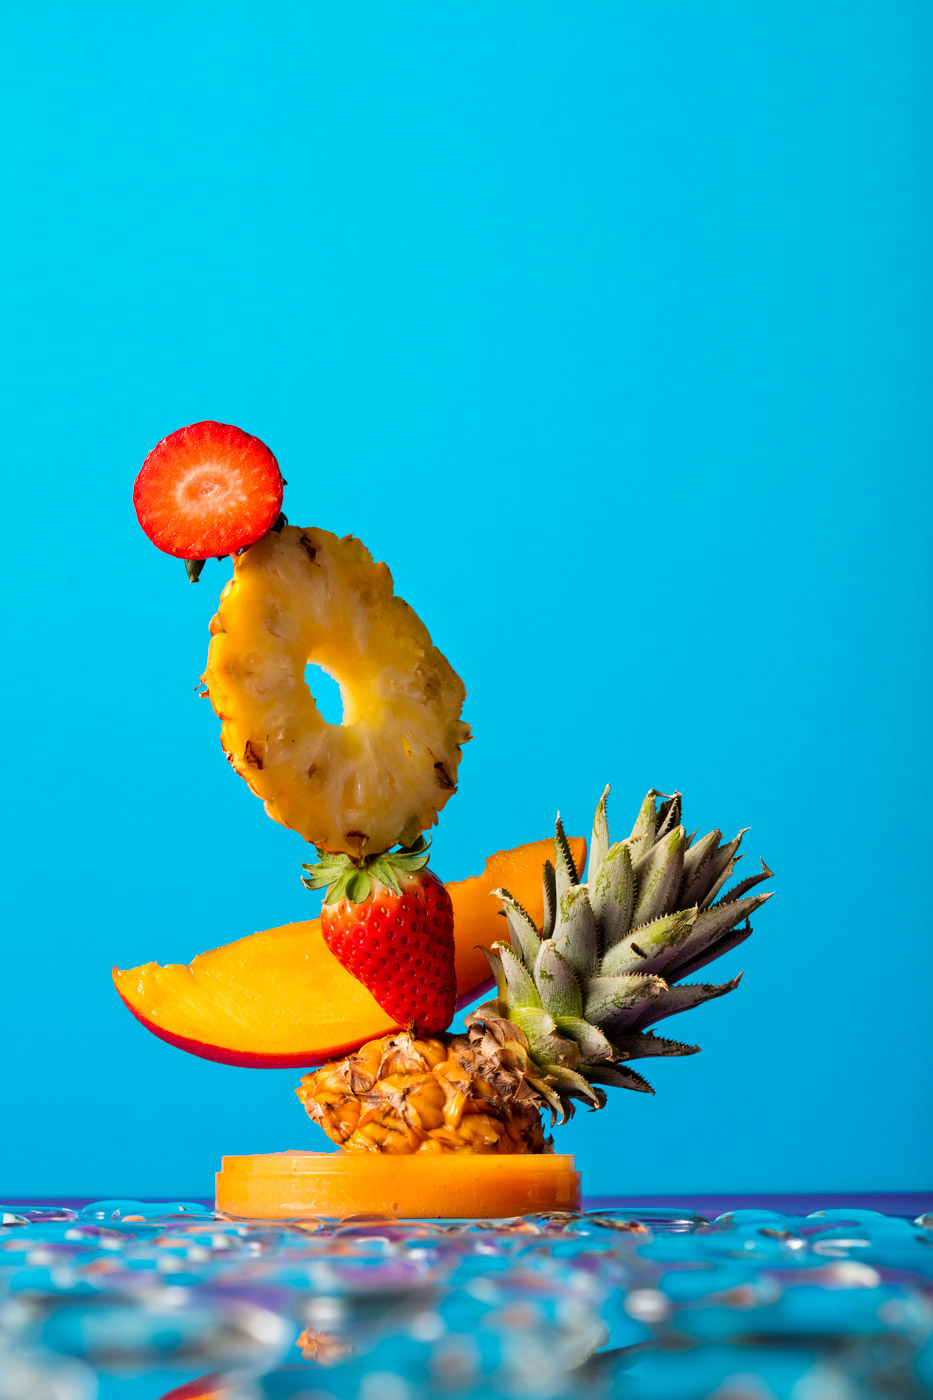 Smoothie sculpture, ananas, strawberry and mango